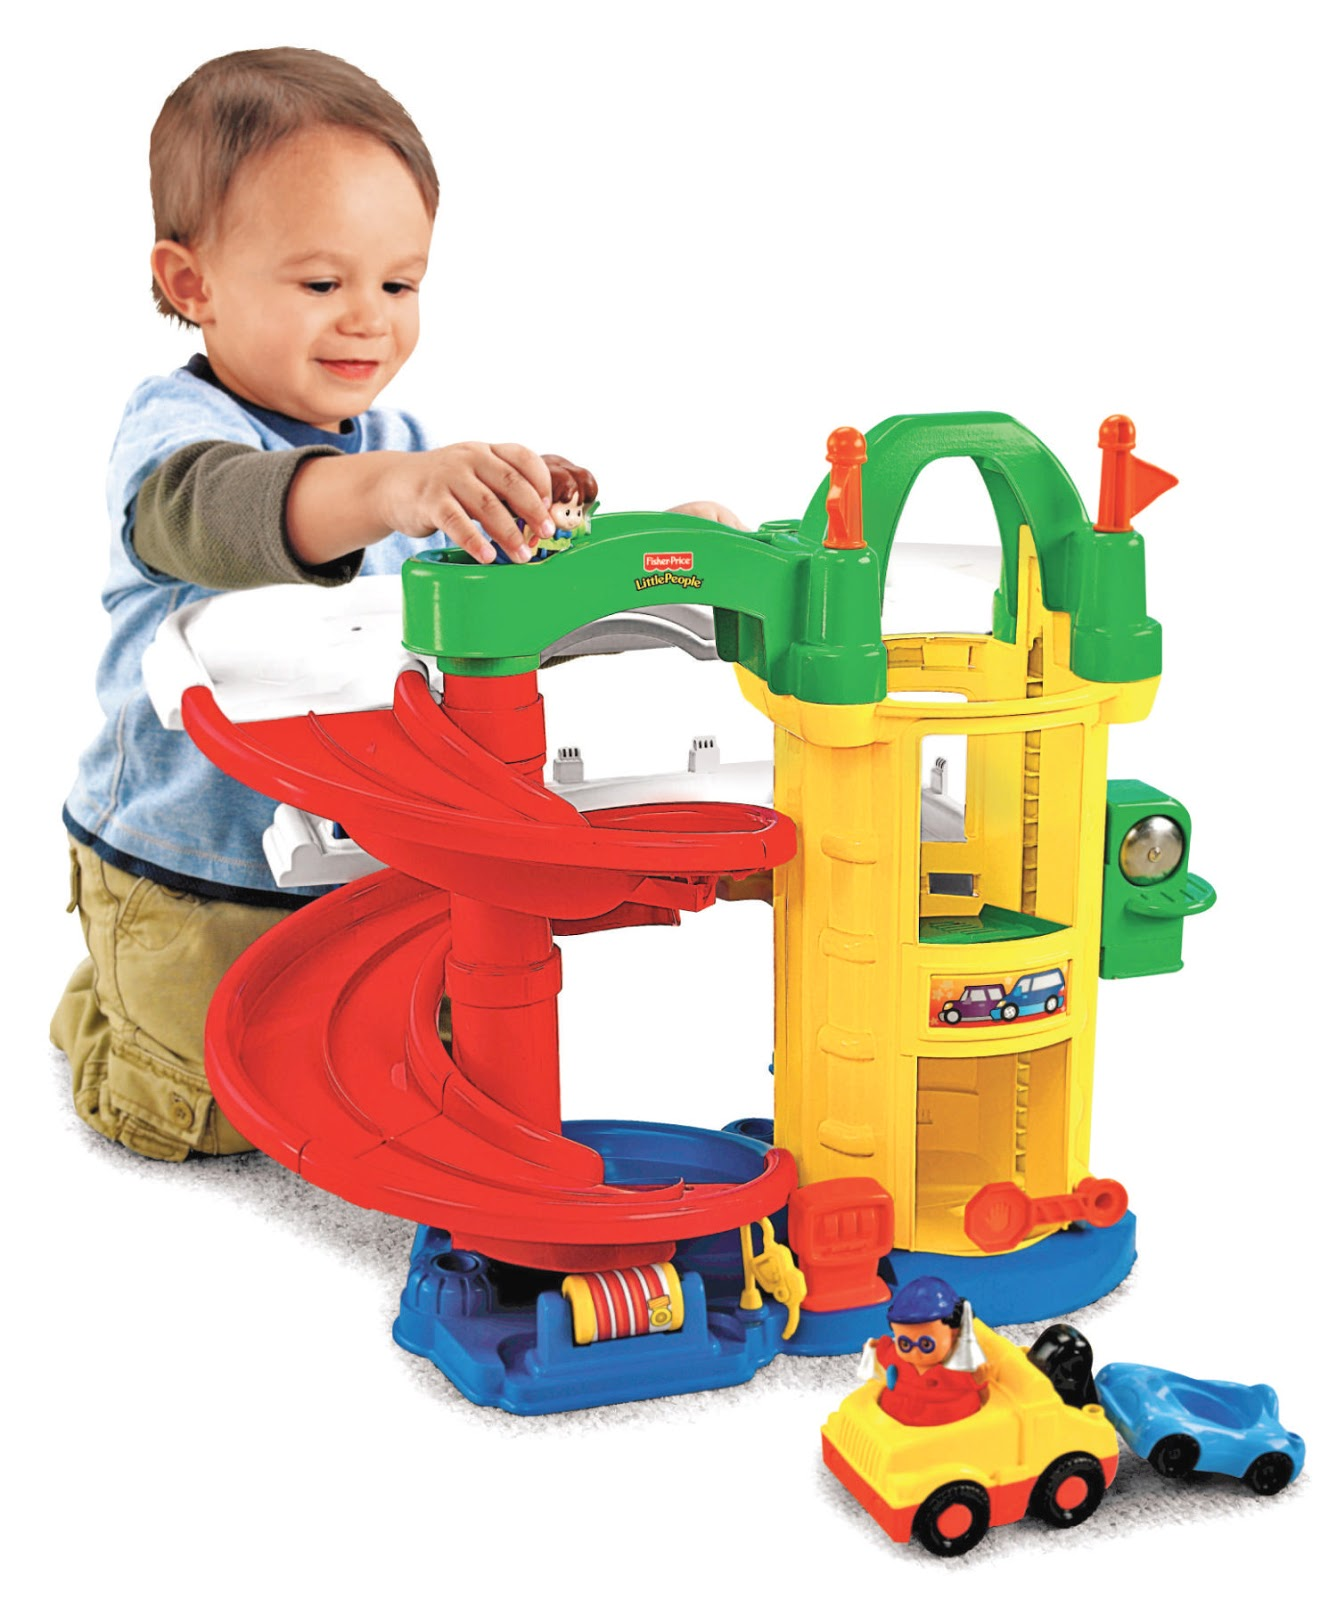 My Favourite Toy Essay